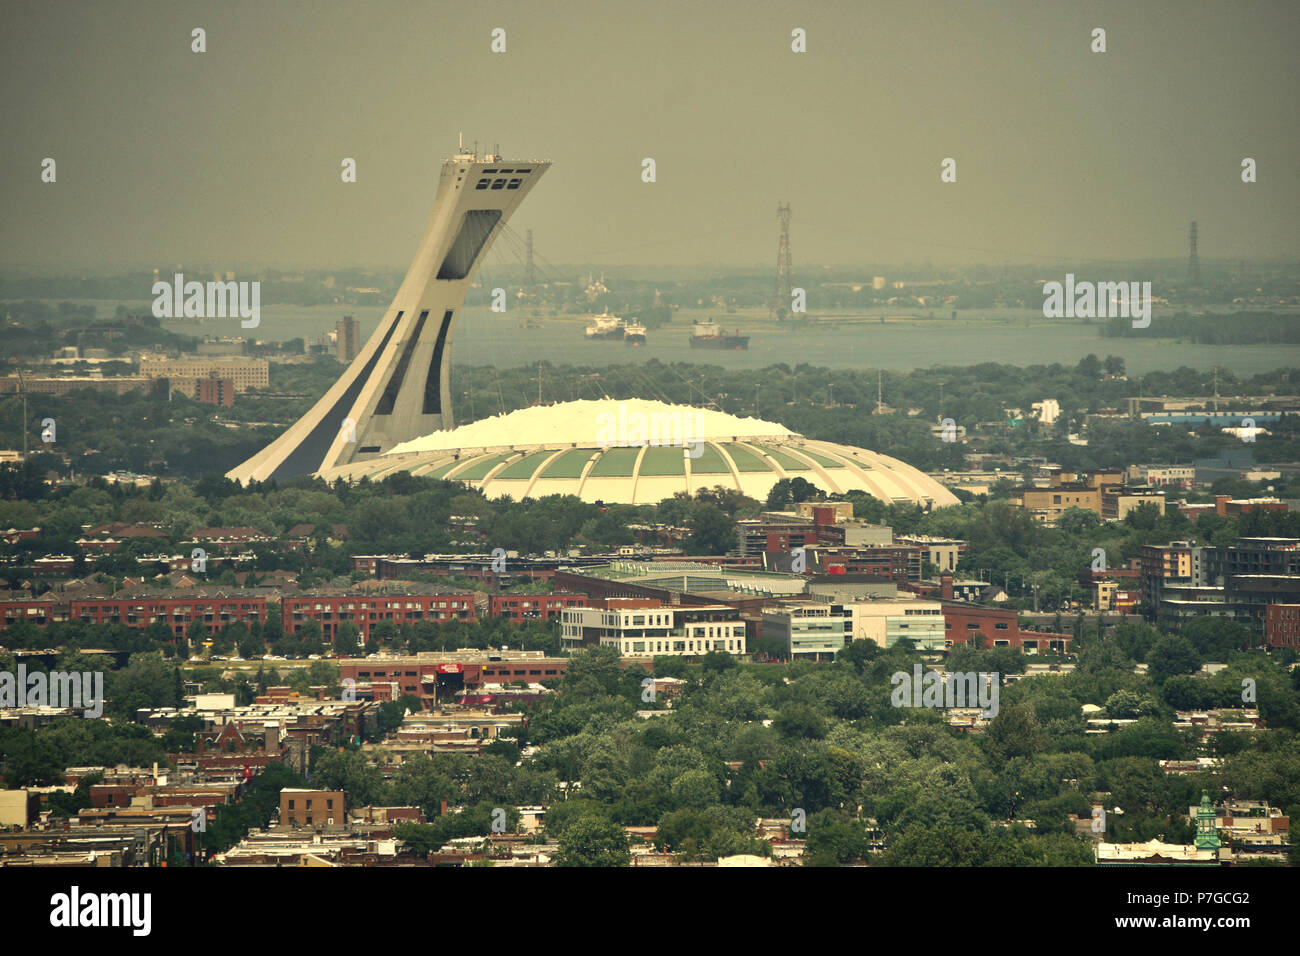 Montreal, Canada, July 5, 2018.View of the Olympic stadium during a heat wave in the city.Credit Mario Beauregard/Alamy Live News - Stock Image